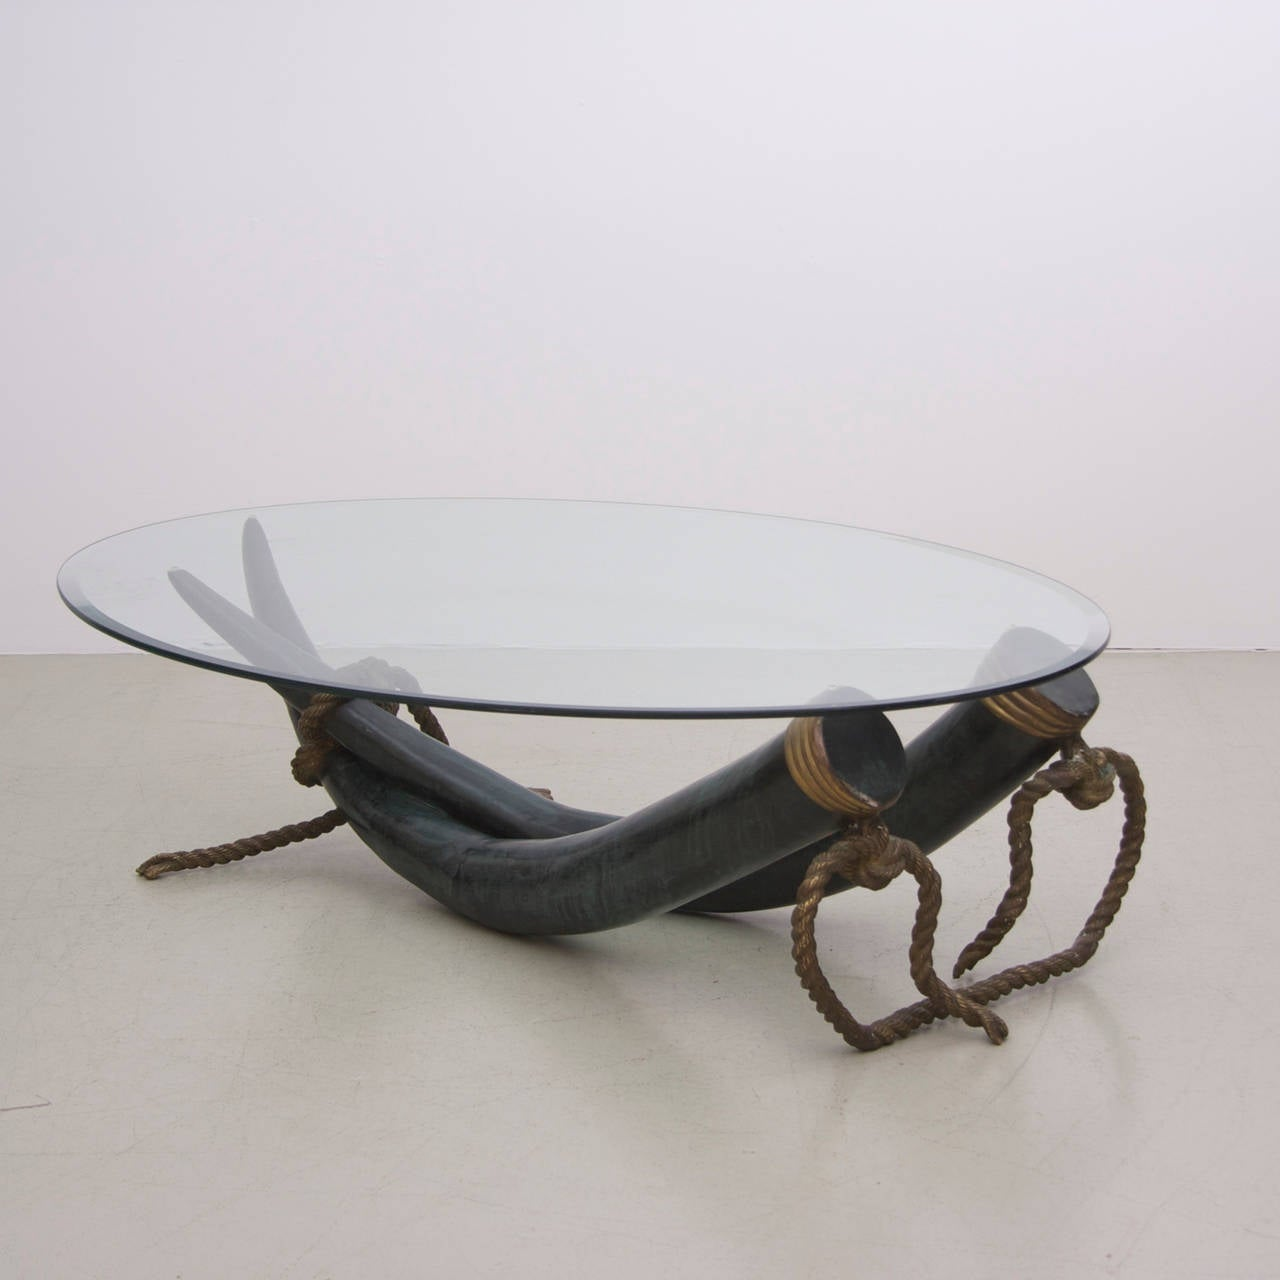 Wonderful Huge Elephant Tusk Coffee Table With Oval Glass Tabletop Tusks Are Made Of Bronze